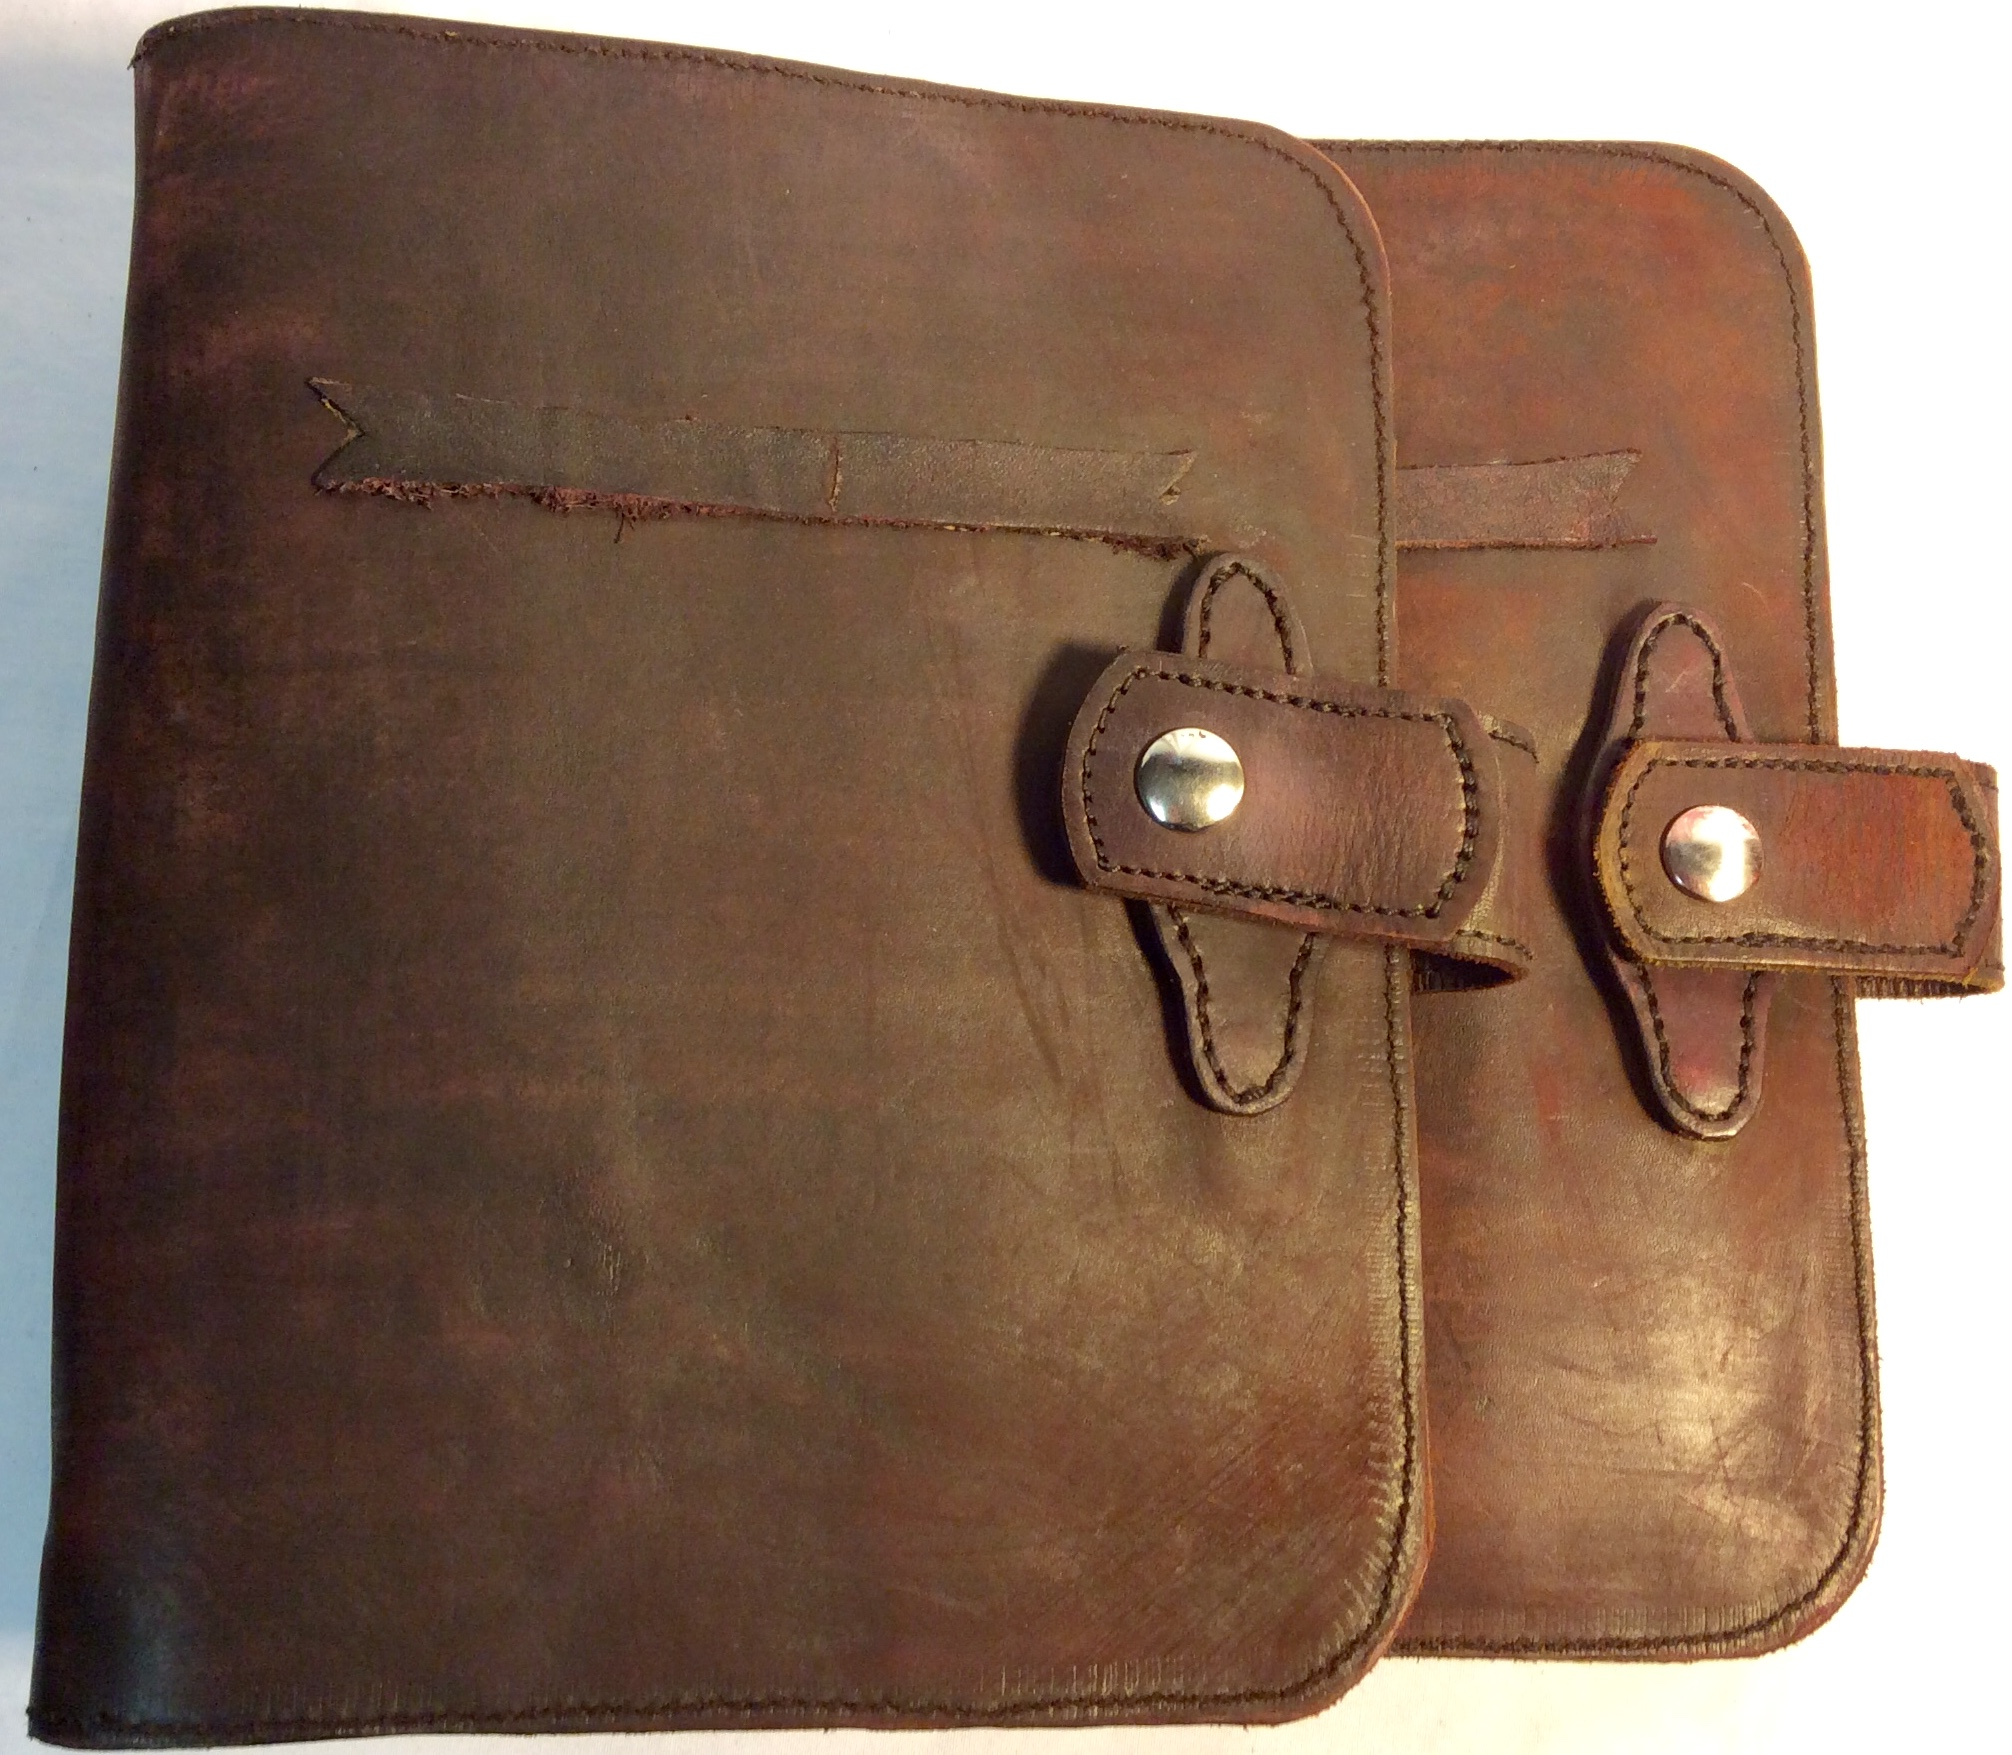 Aged brown leather notebook cover